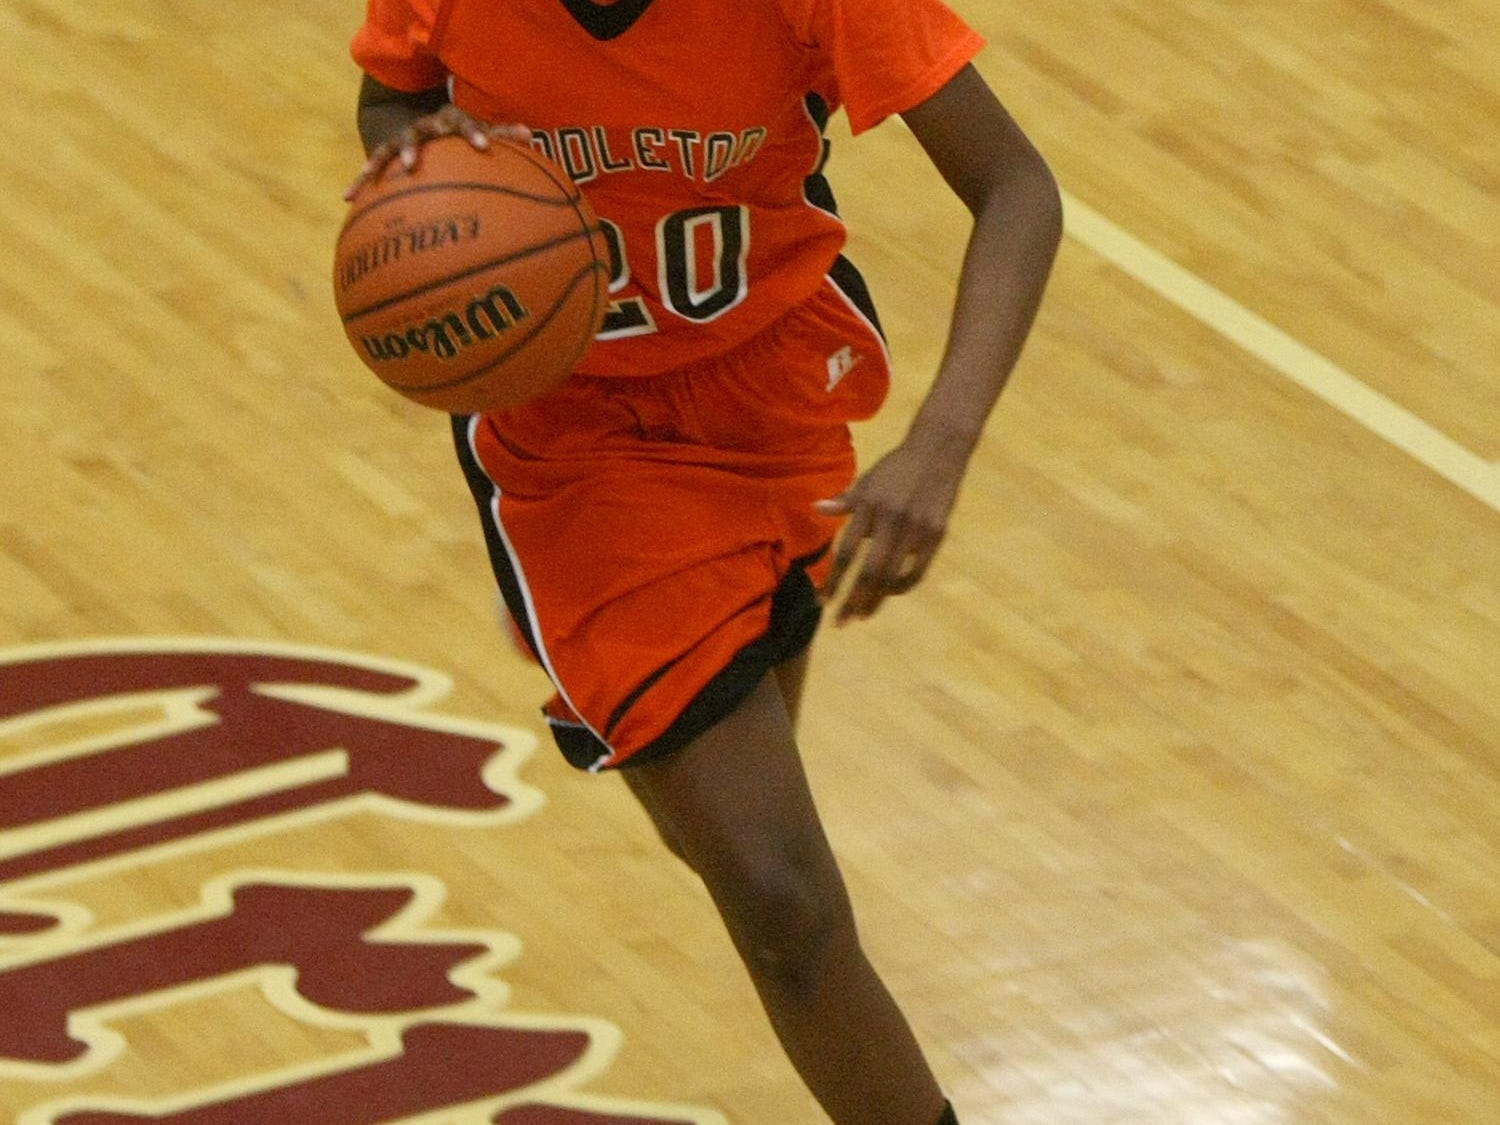 Middleton's Chelsey Perry (20) and the Lady Tigers moved up one spot to No. 3 in this week's Dirty Dozen.